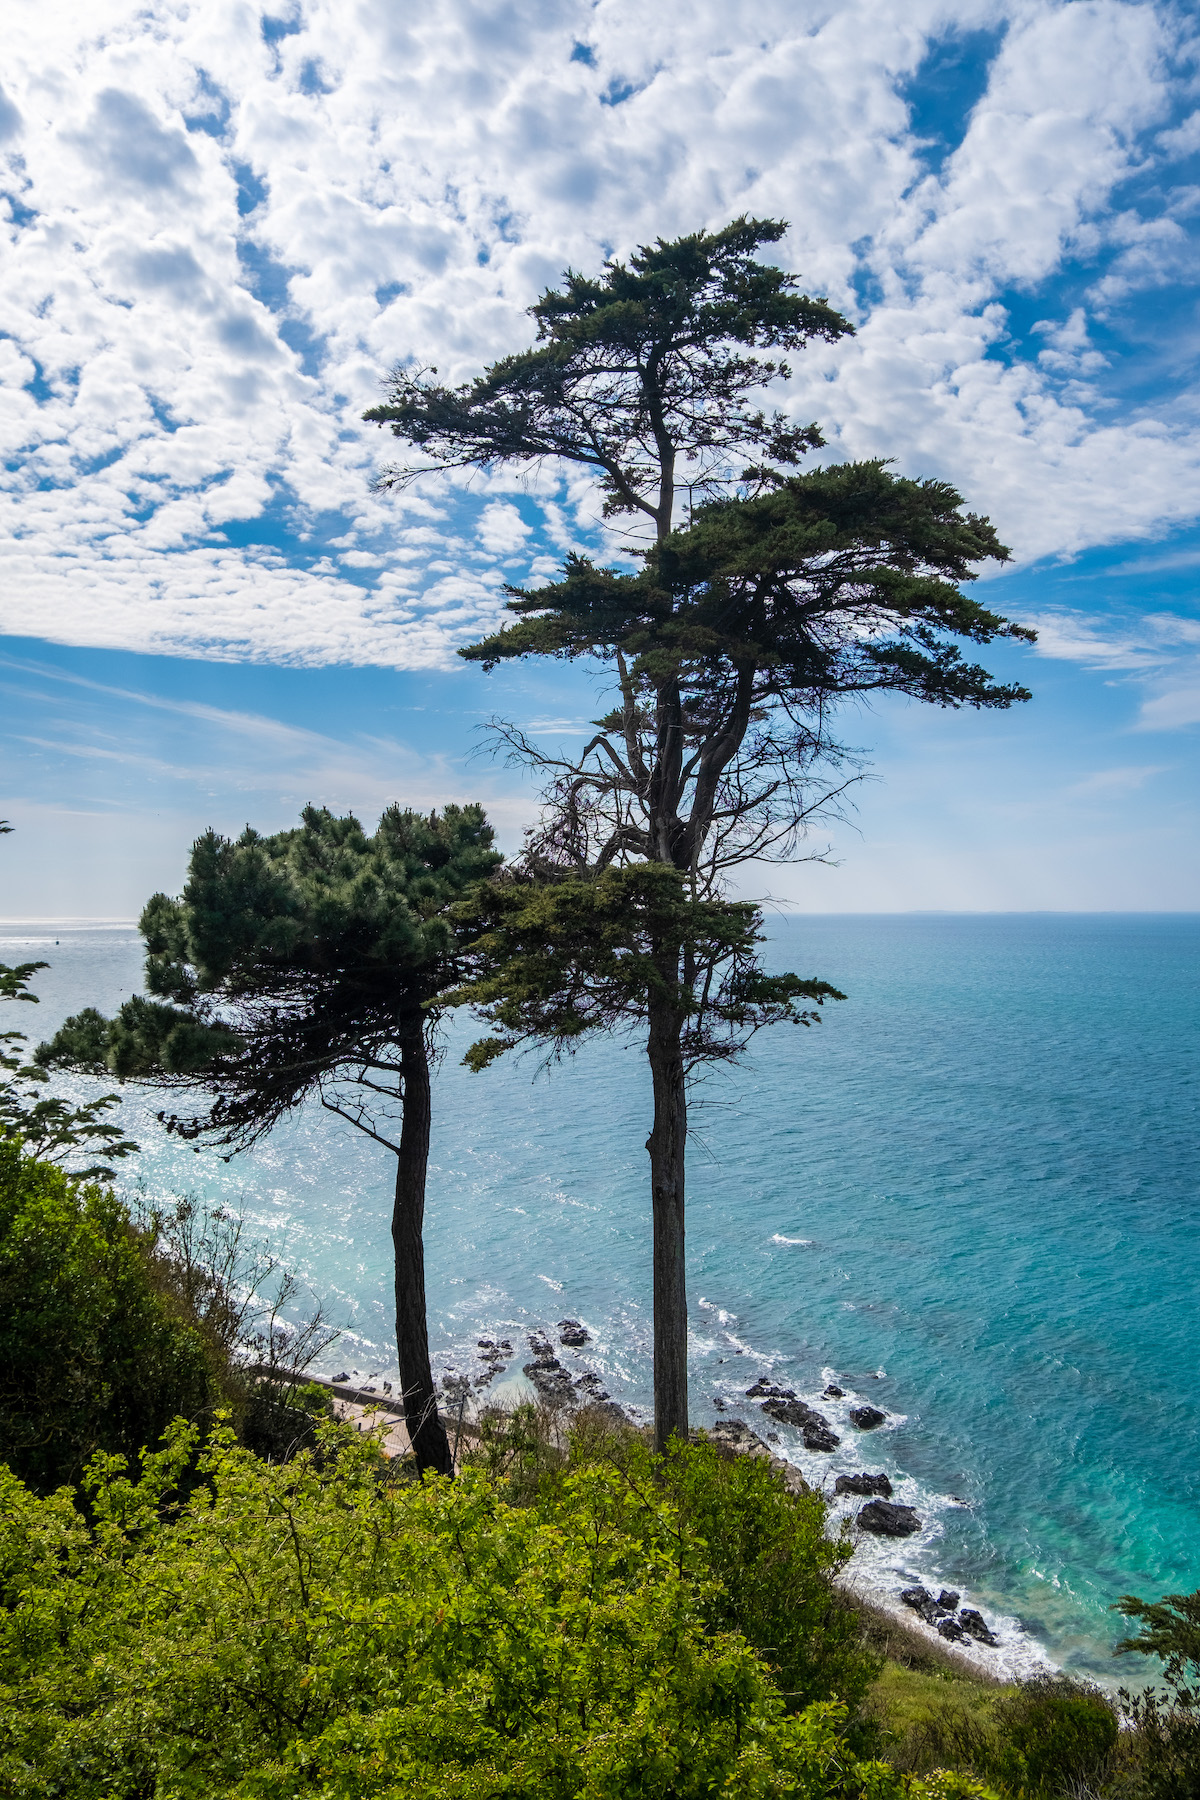 the view from christian dior's childhood home in granville, normandy